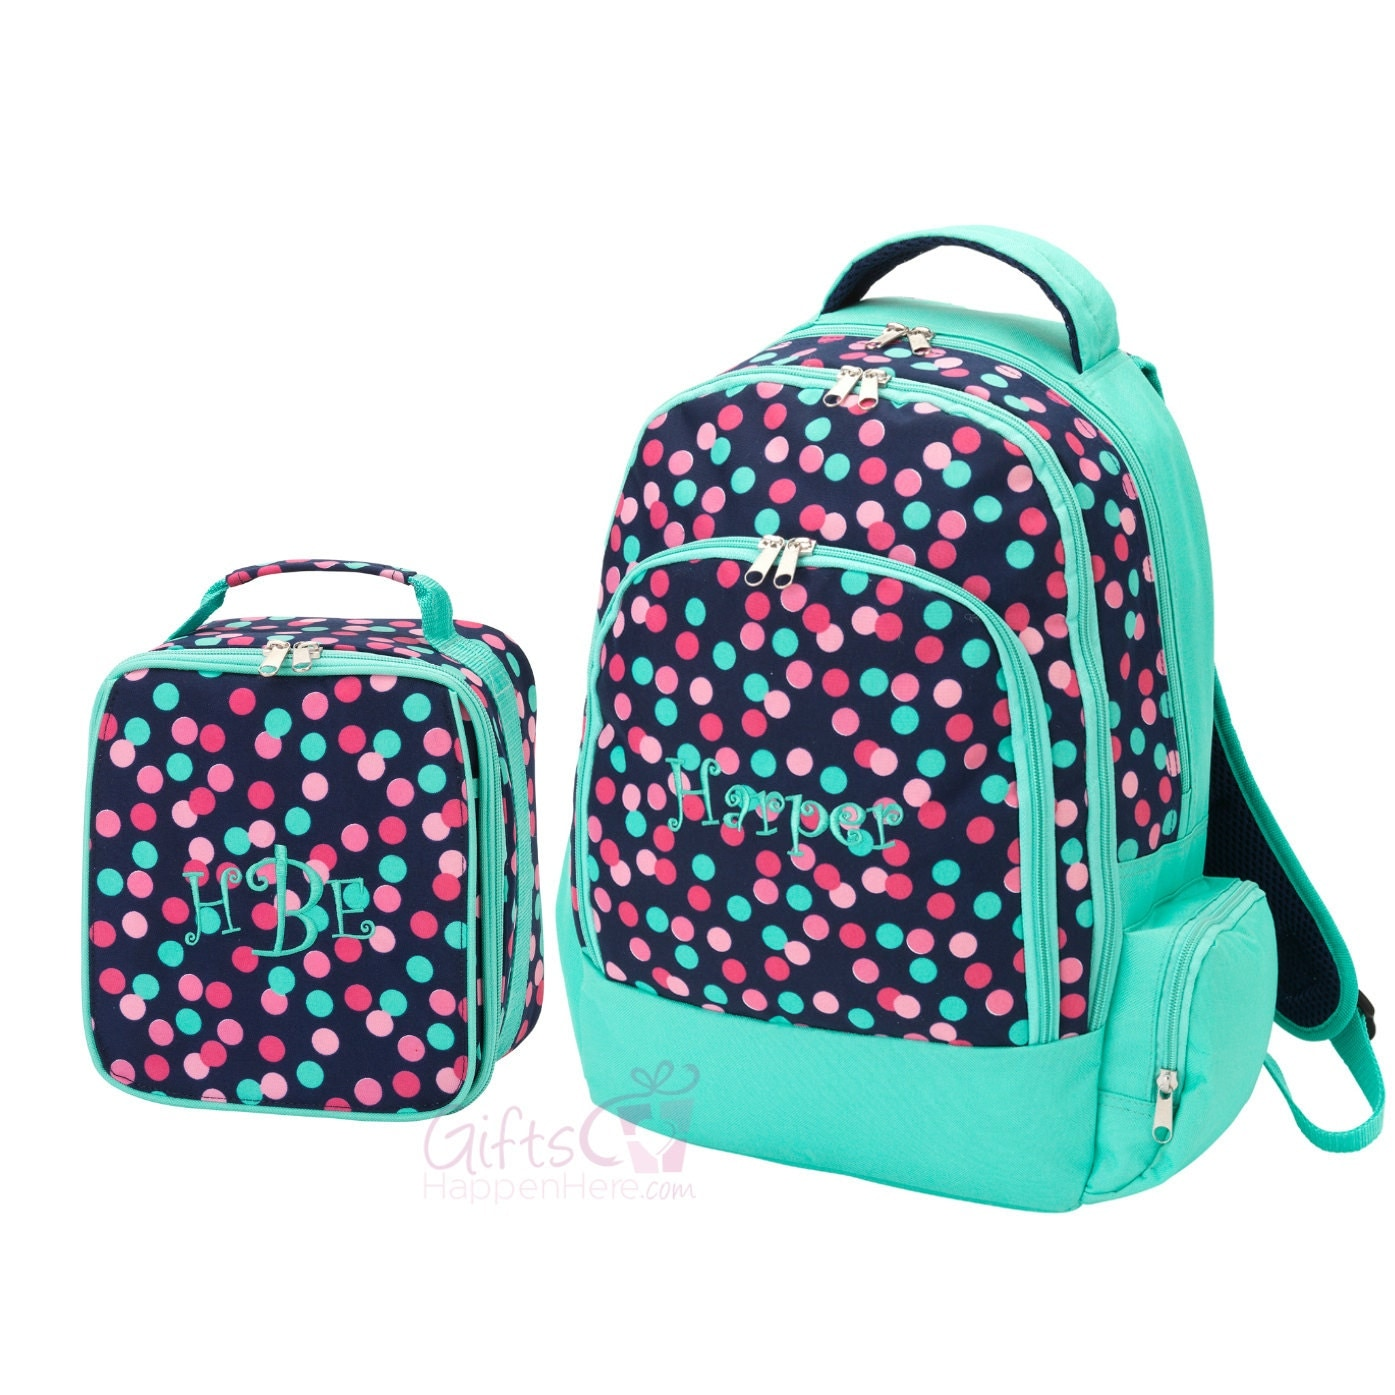 Personalized Polka Dot Backpack Lunch Bag Matching Combo